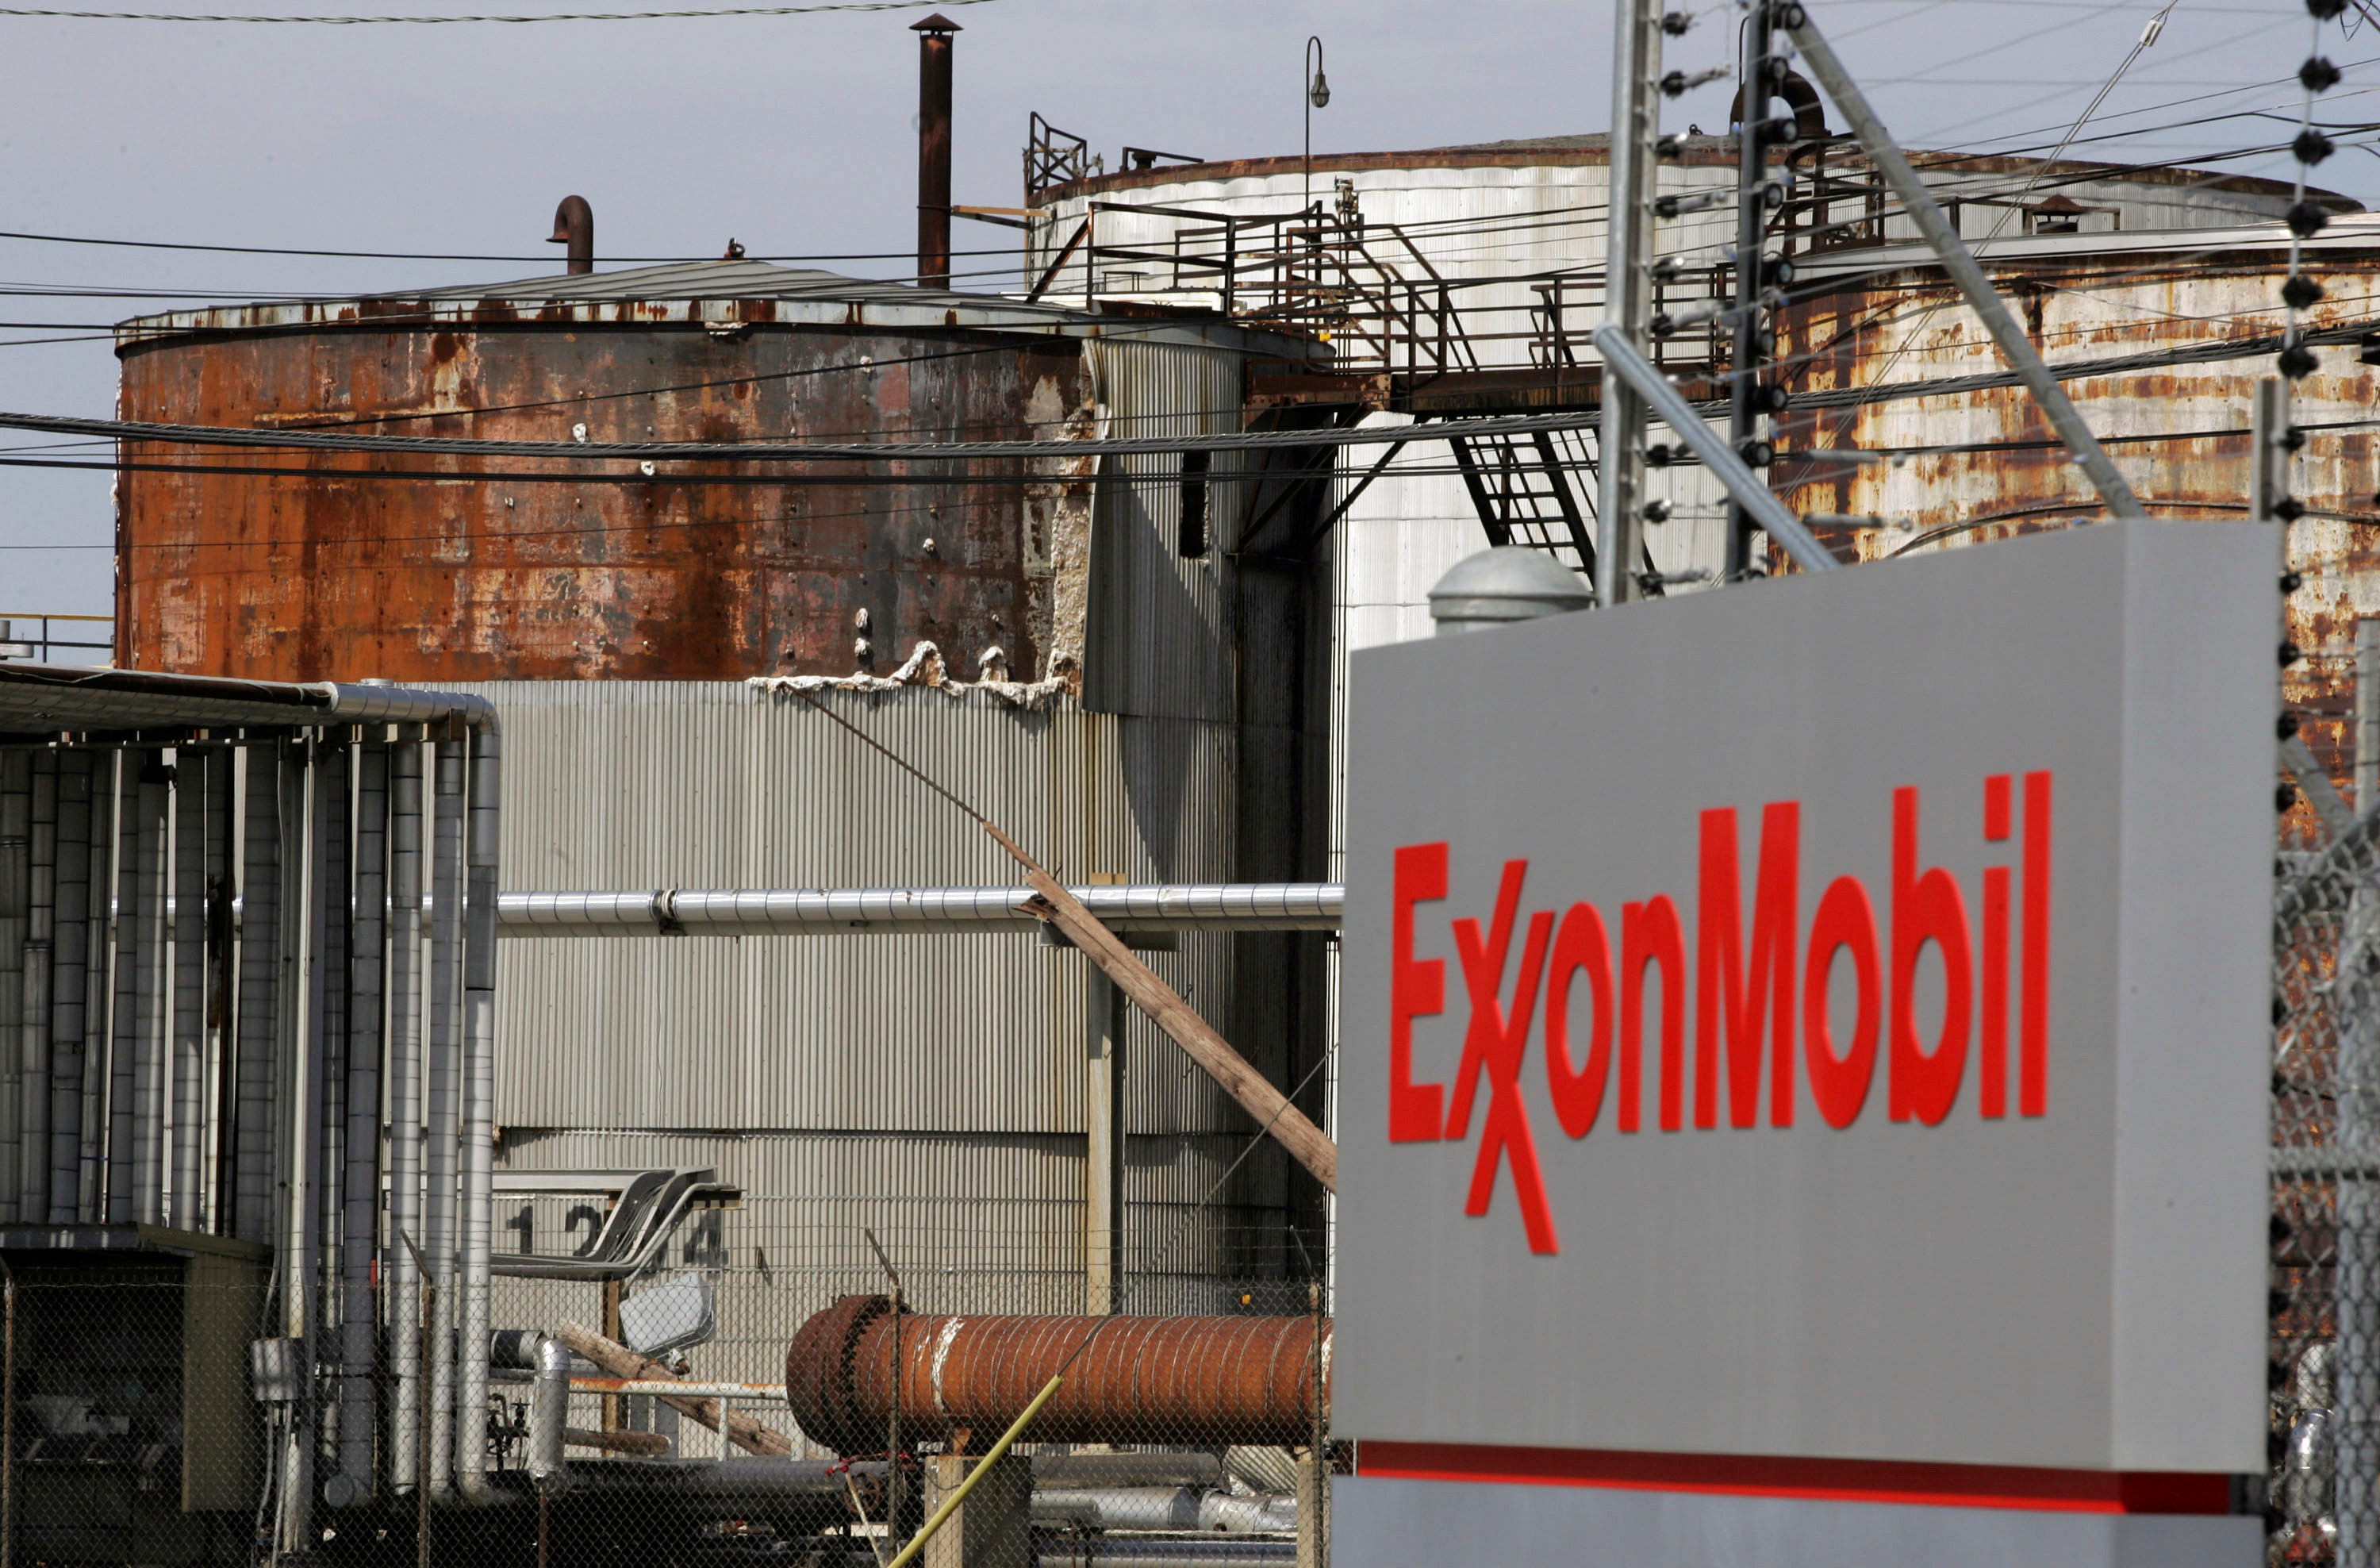 A view of the Exxon Mobil refinery in Baytown, Texas September 15, 2008. REUTERS/Jessica Rinaldi/File Photo